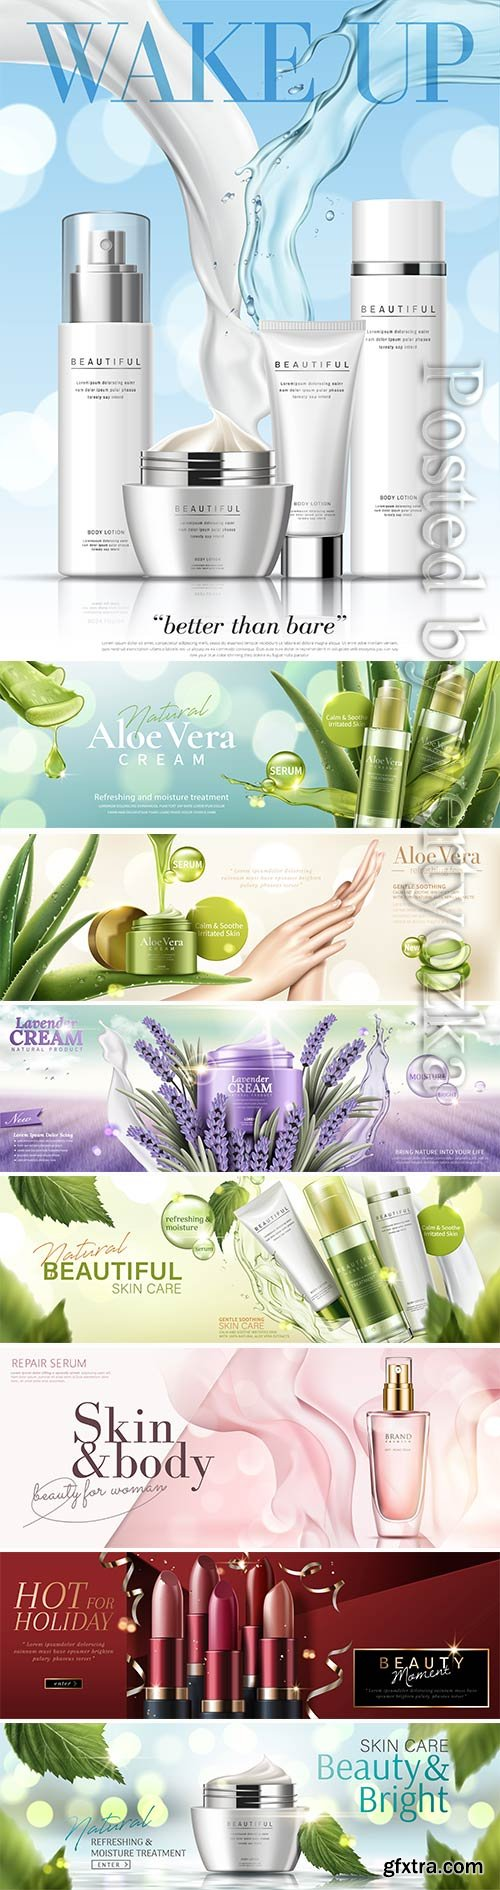 Cosmetic skincare products vector banner